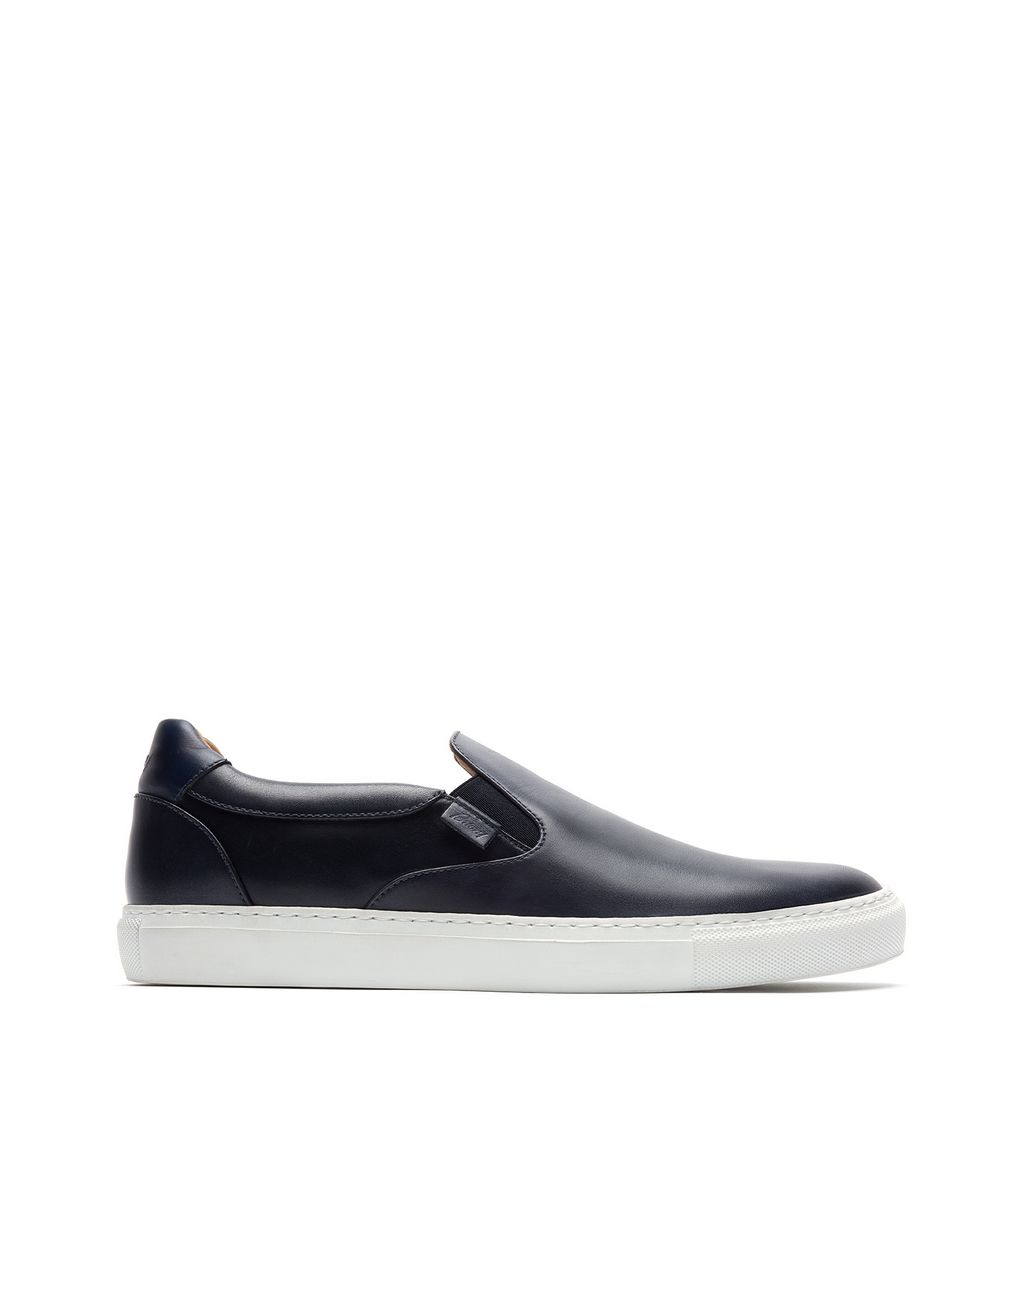 BRIONI Navy Blue Slip on Sneaker Sneakers Man f